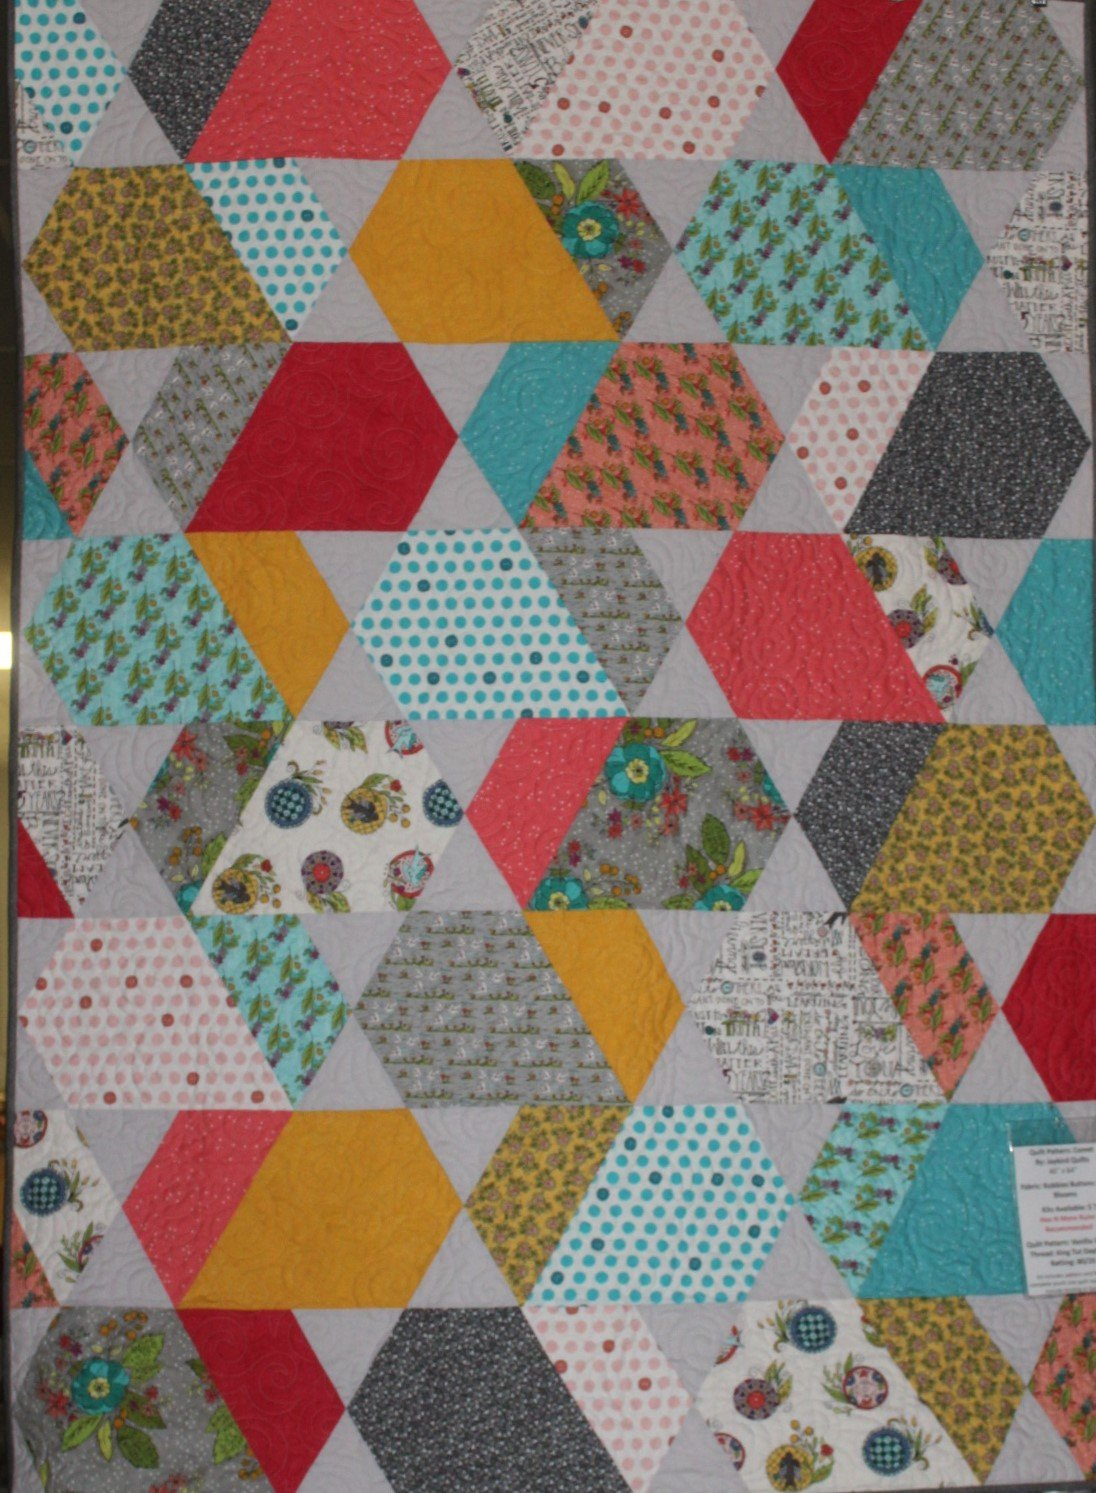 Bubbies Buttons and Blooms Comet Quilt Kit